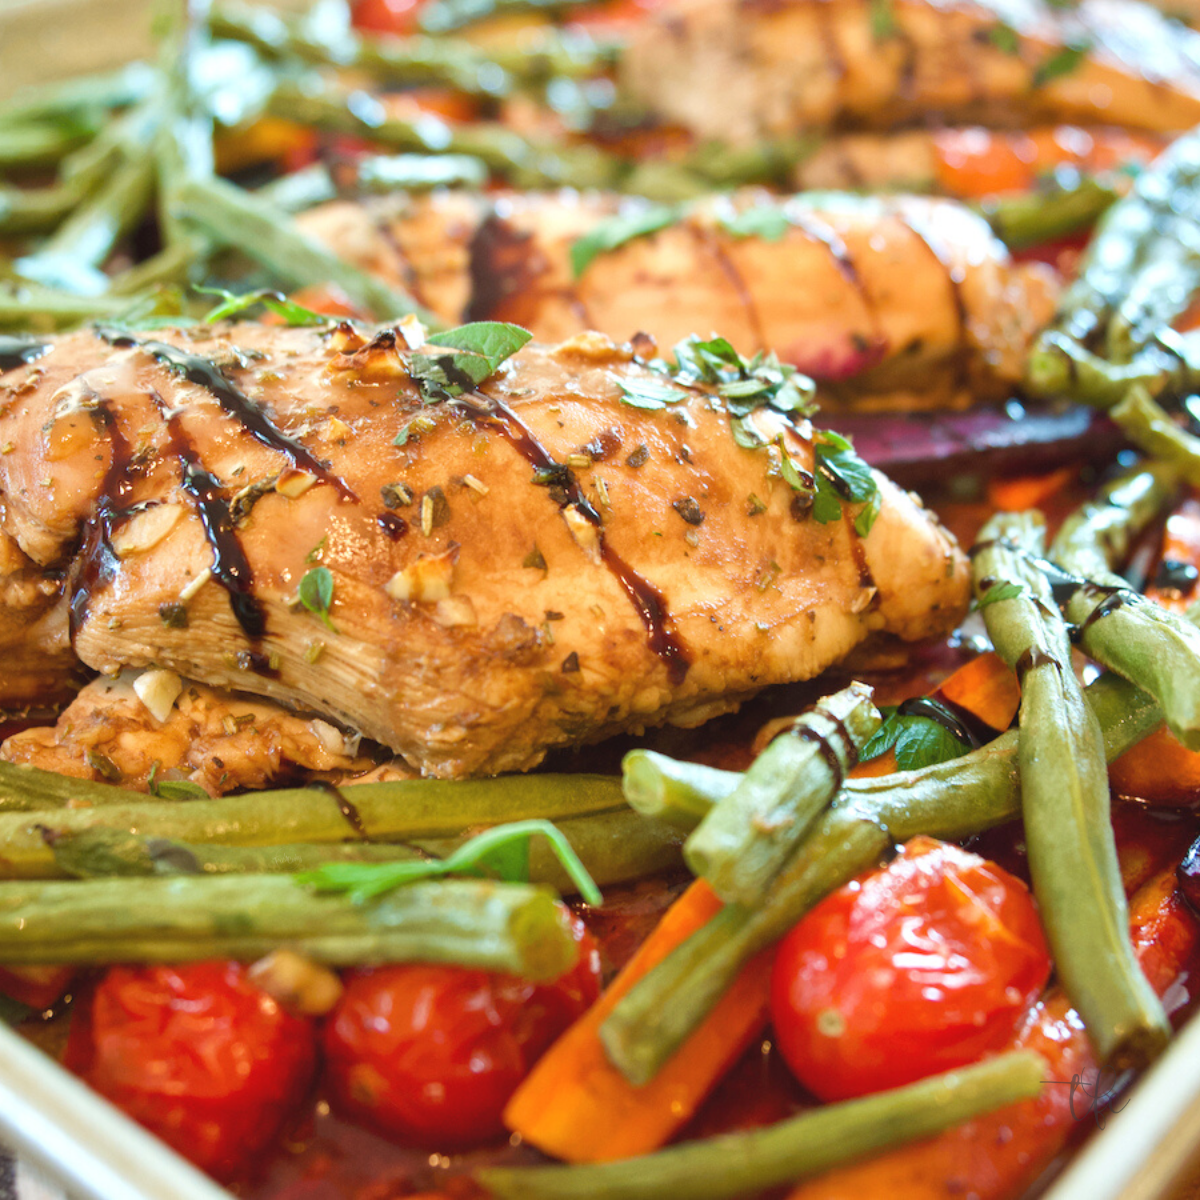 Square image for balsamic maple sheet pan chicken and veggies.